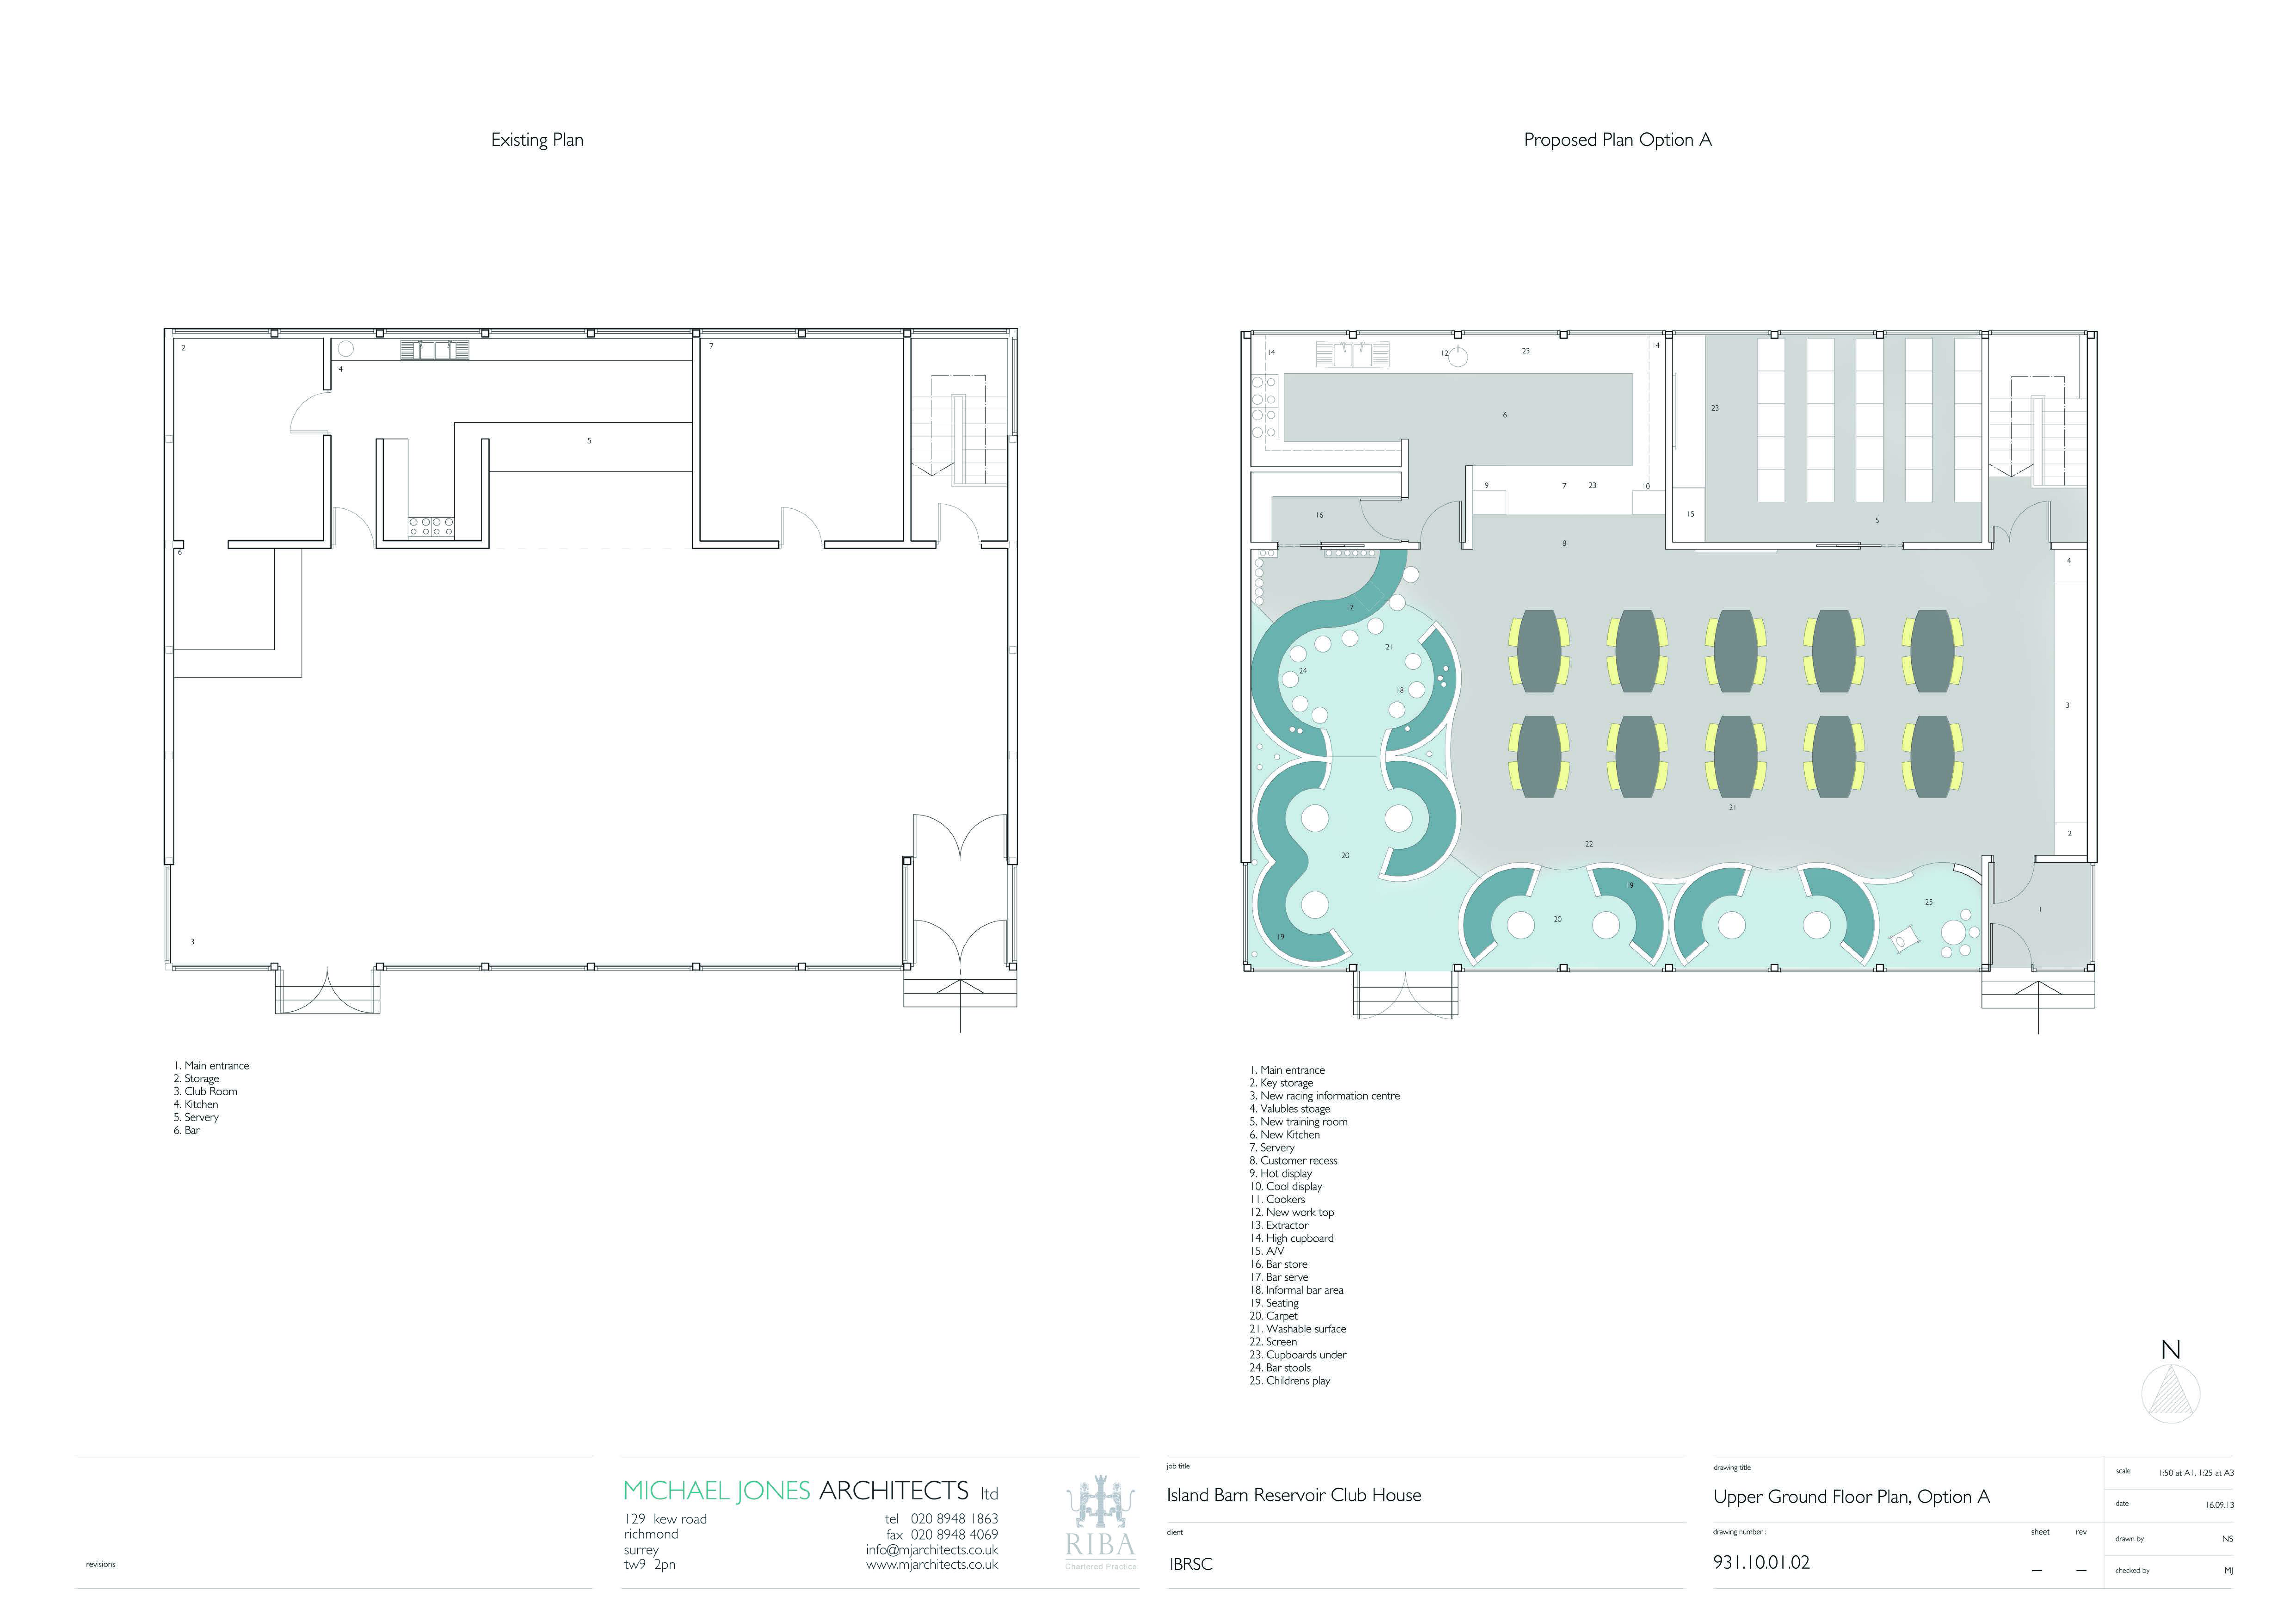 Clubhouse Upper Ground Floor Plan Option A